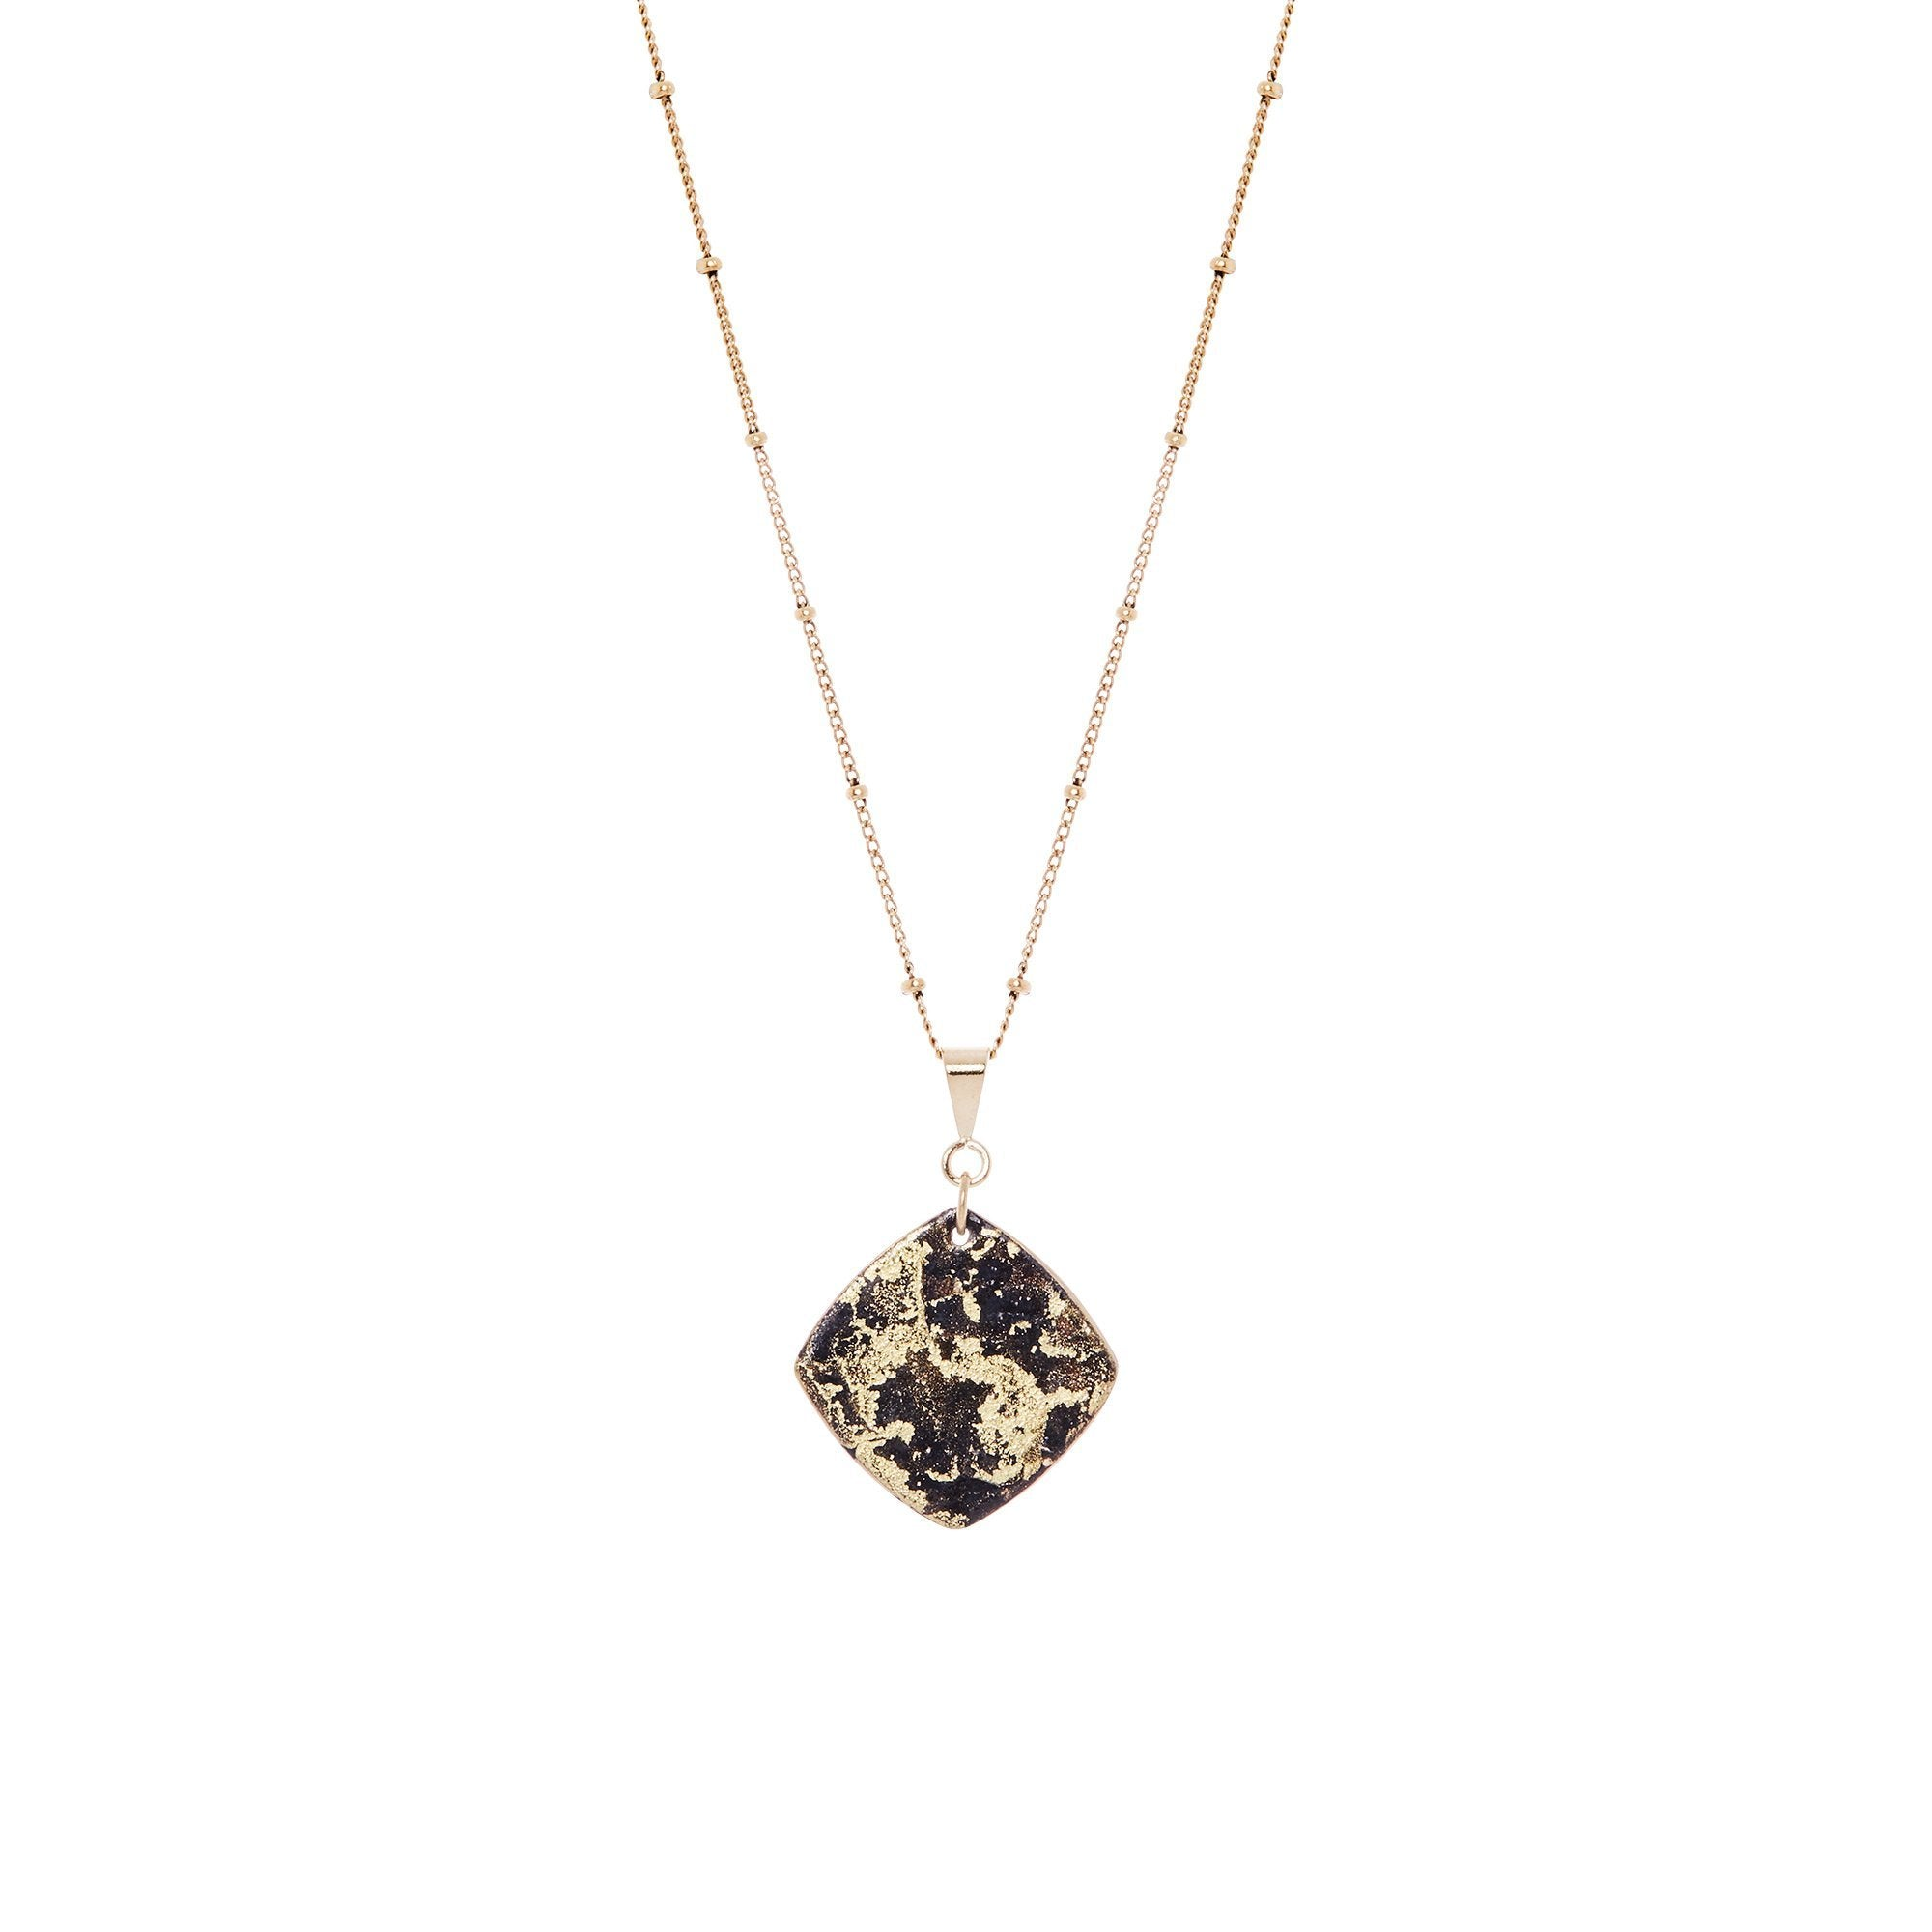 Gold Mini Diamond Necklace - Available in More Colors